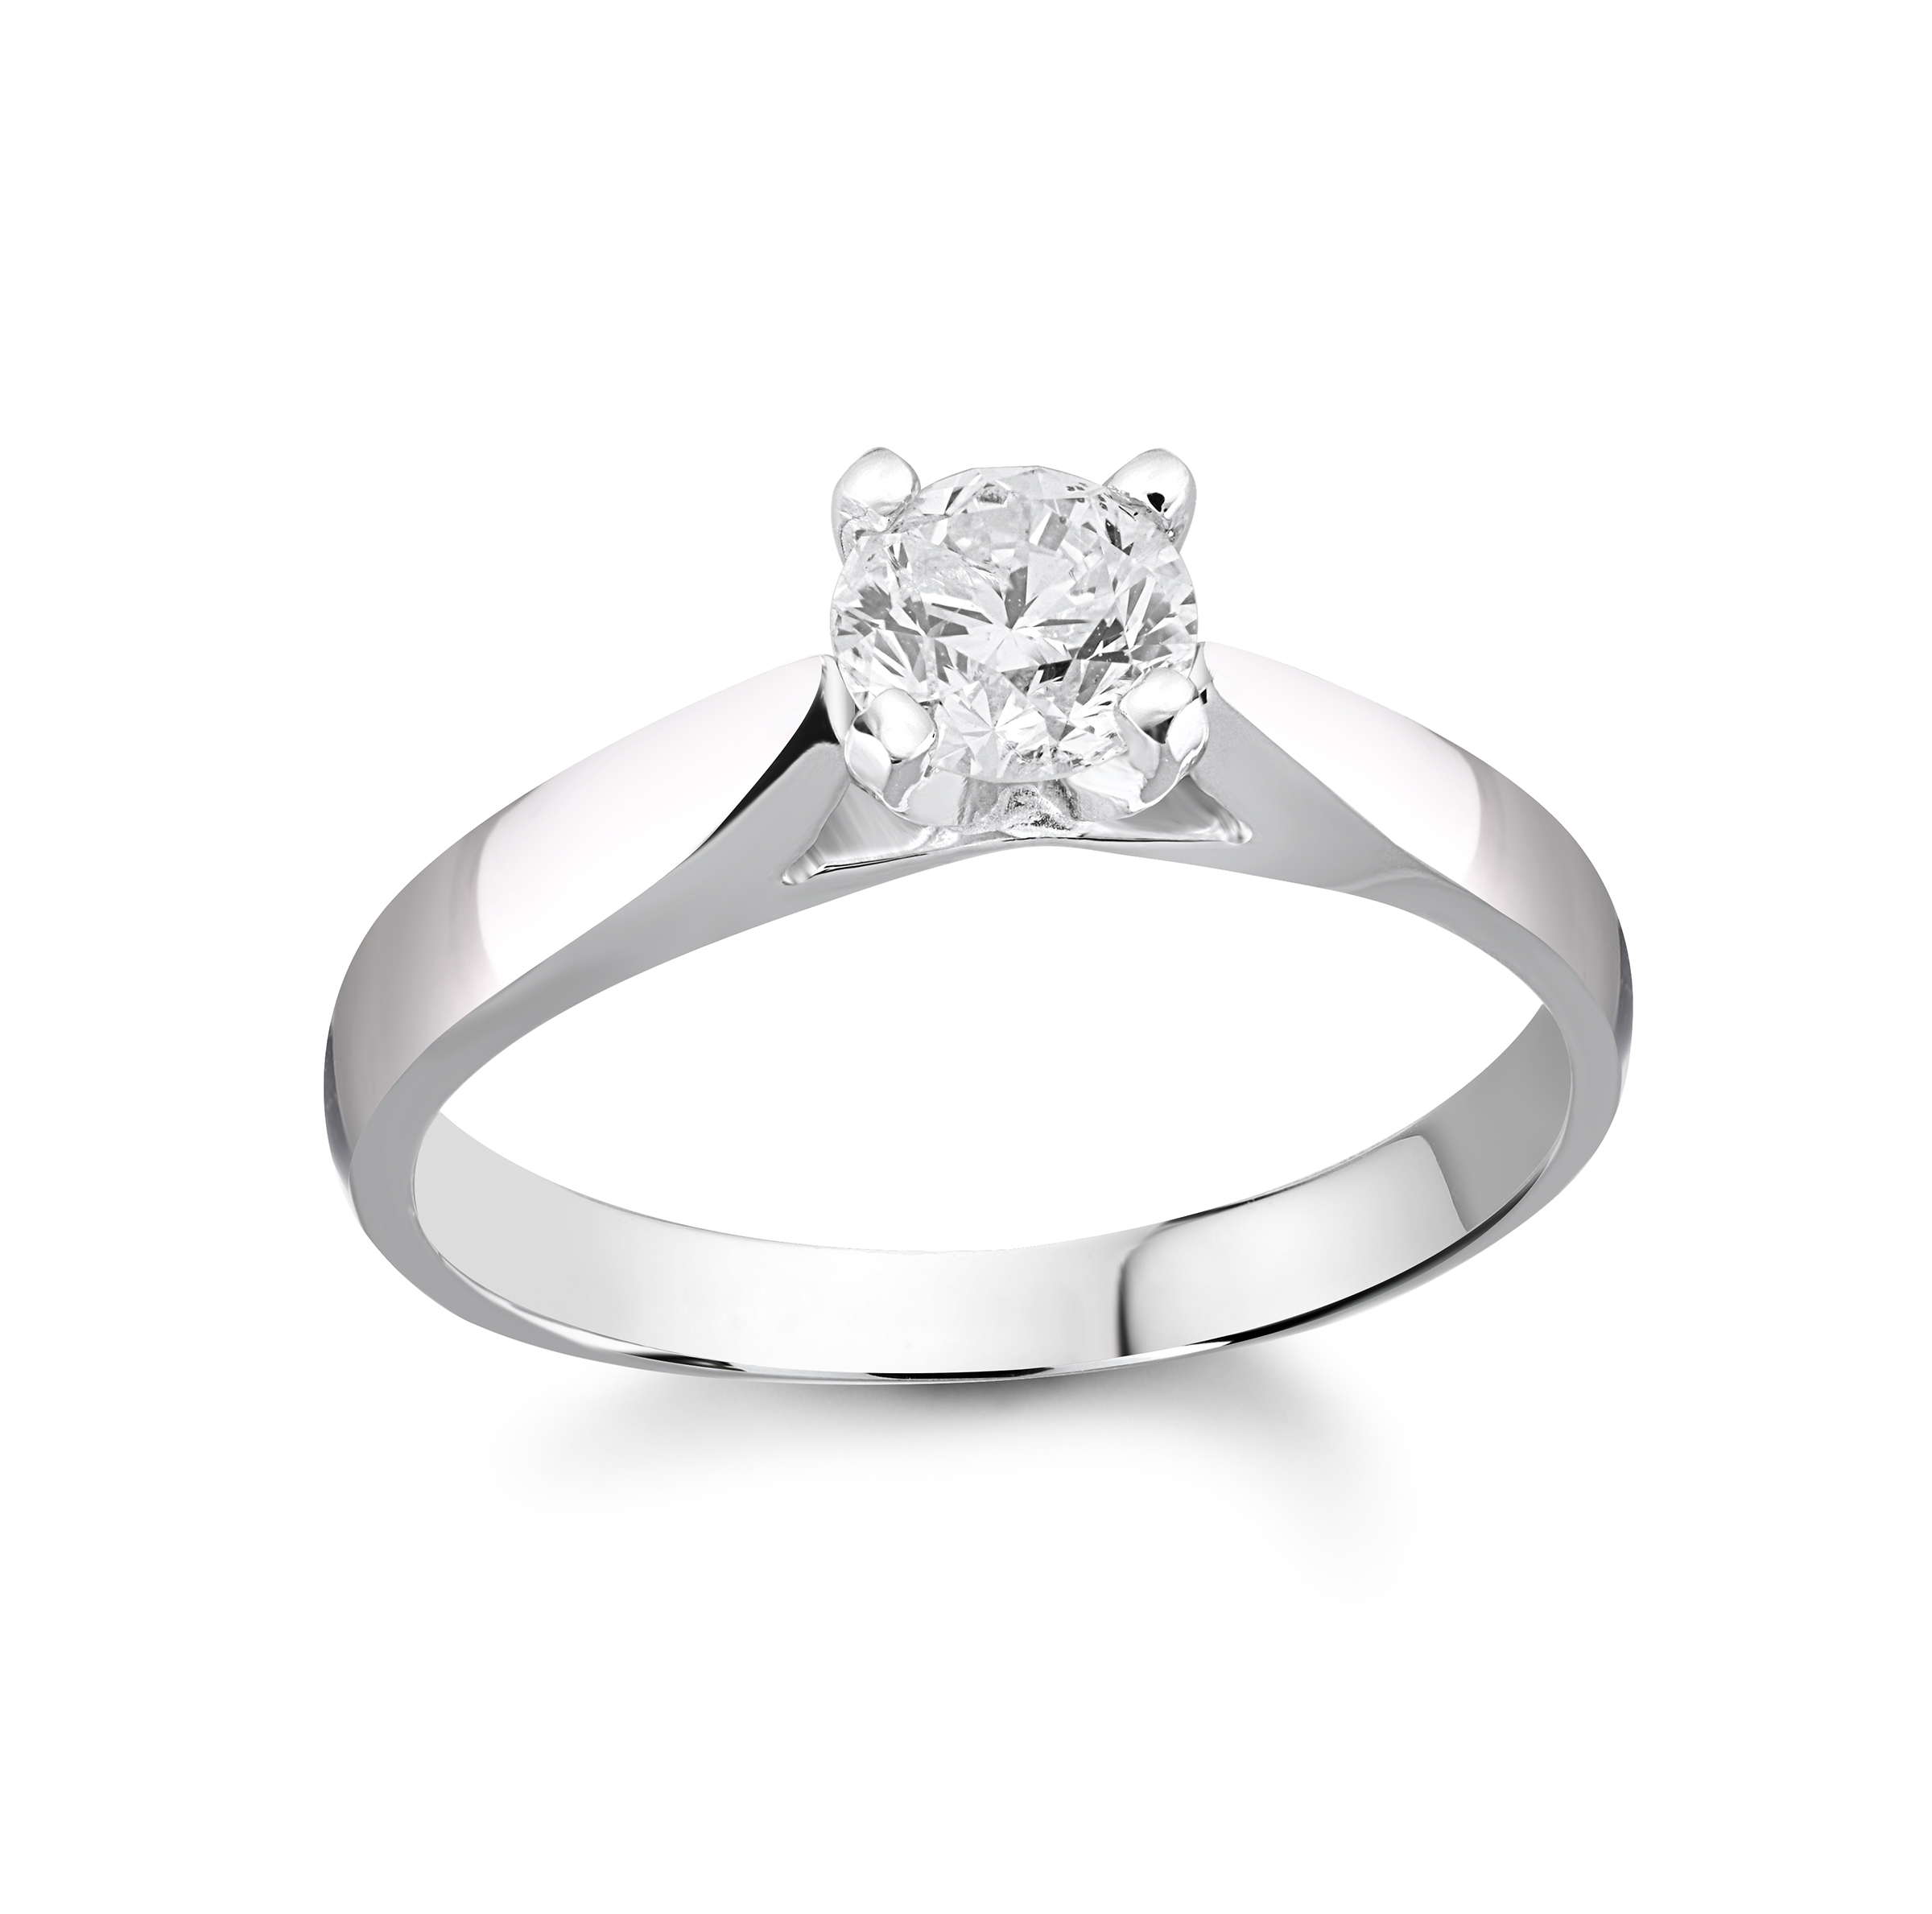 Engagement ring - 14K white Gold & Solitaire diamond 0.50 Carat T.W.